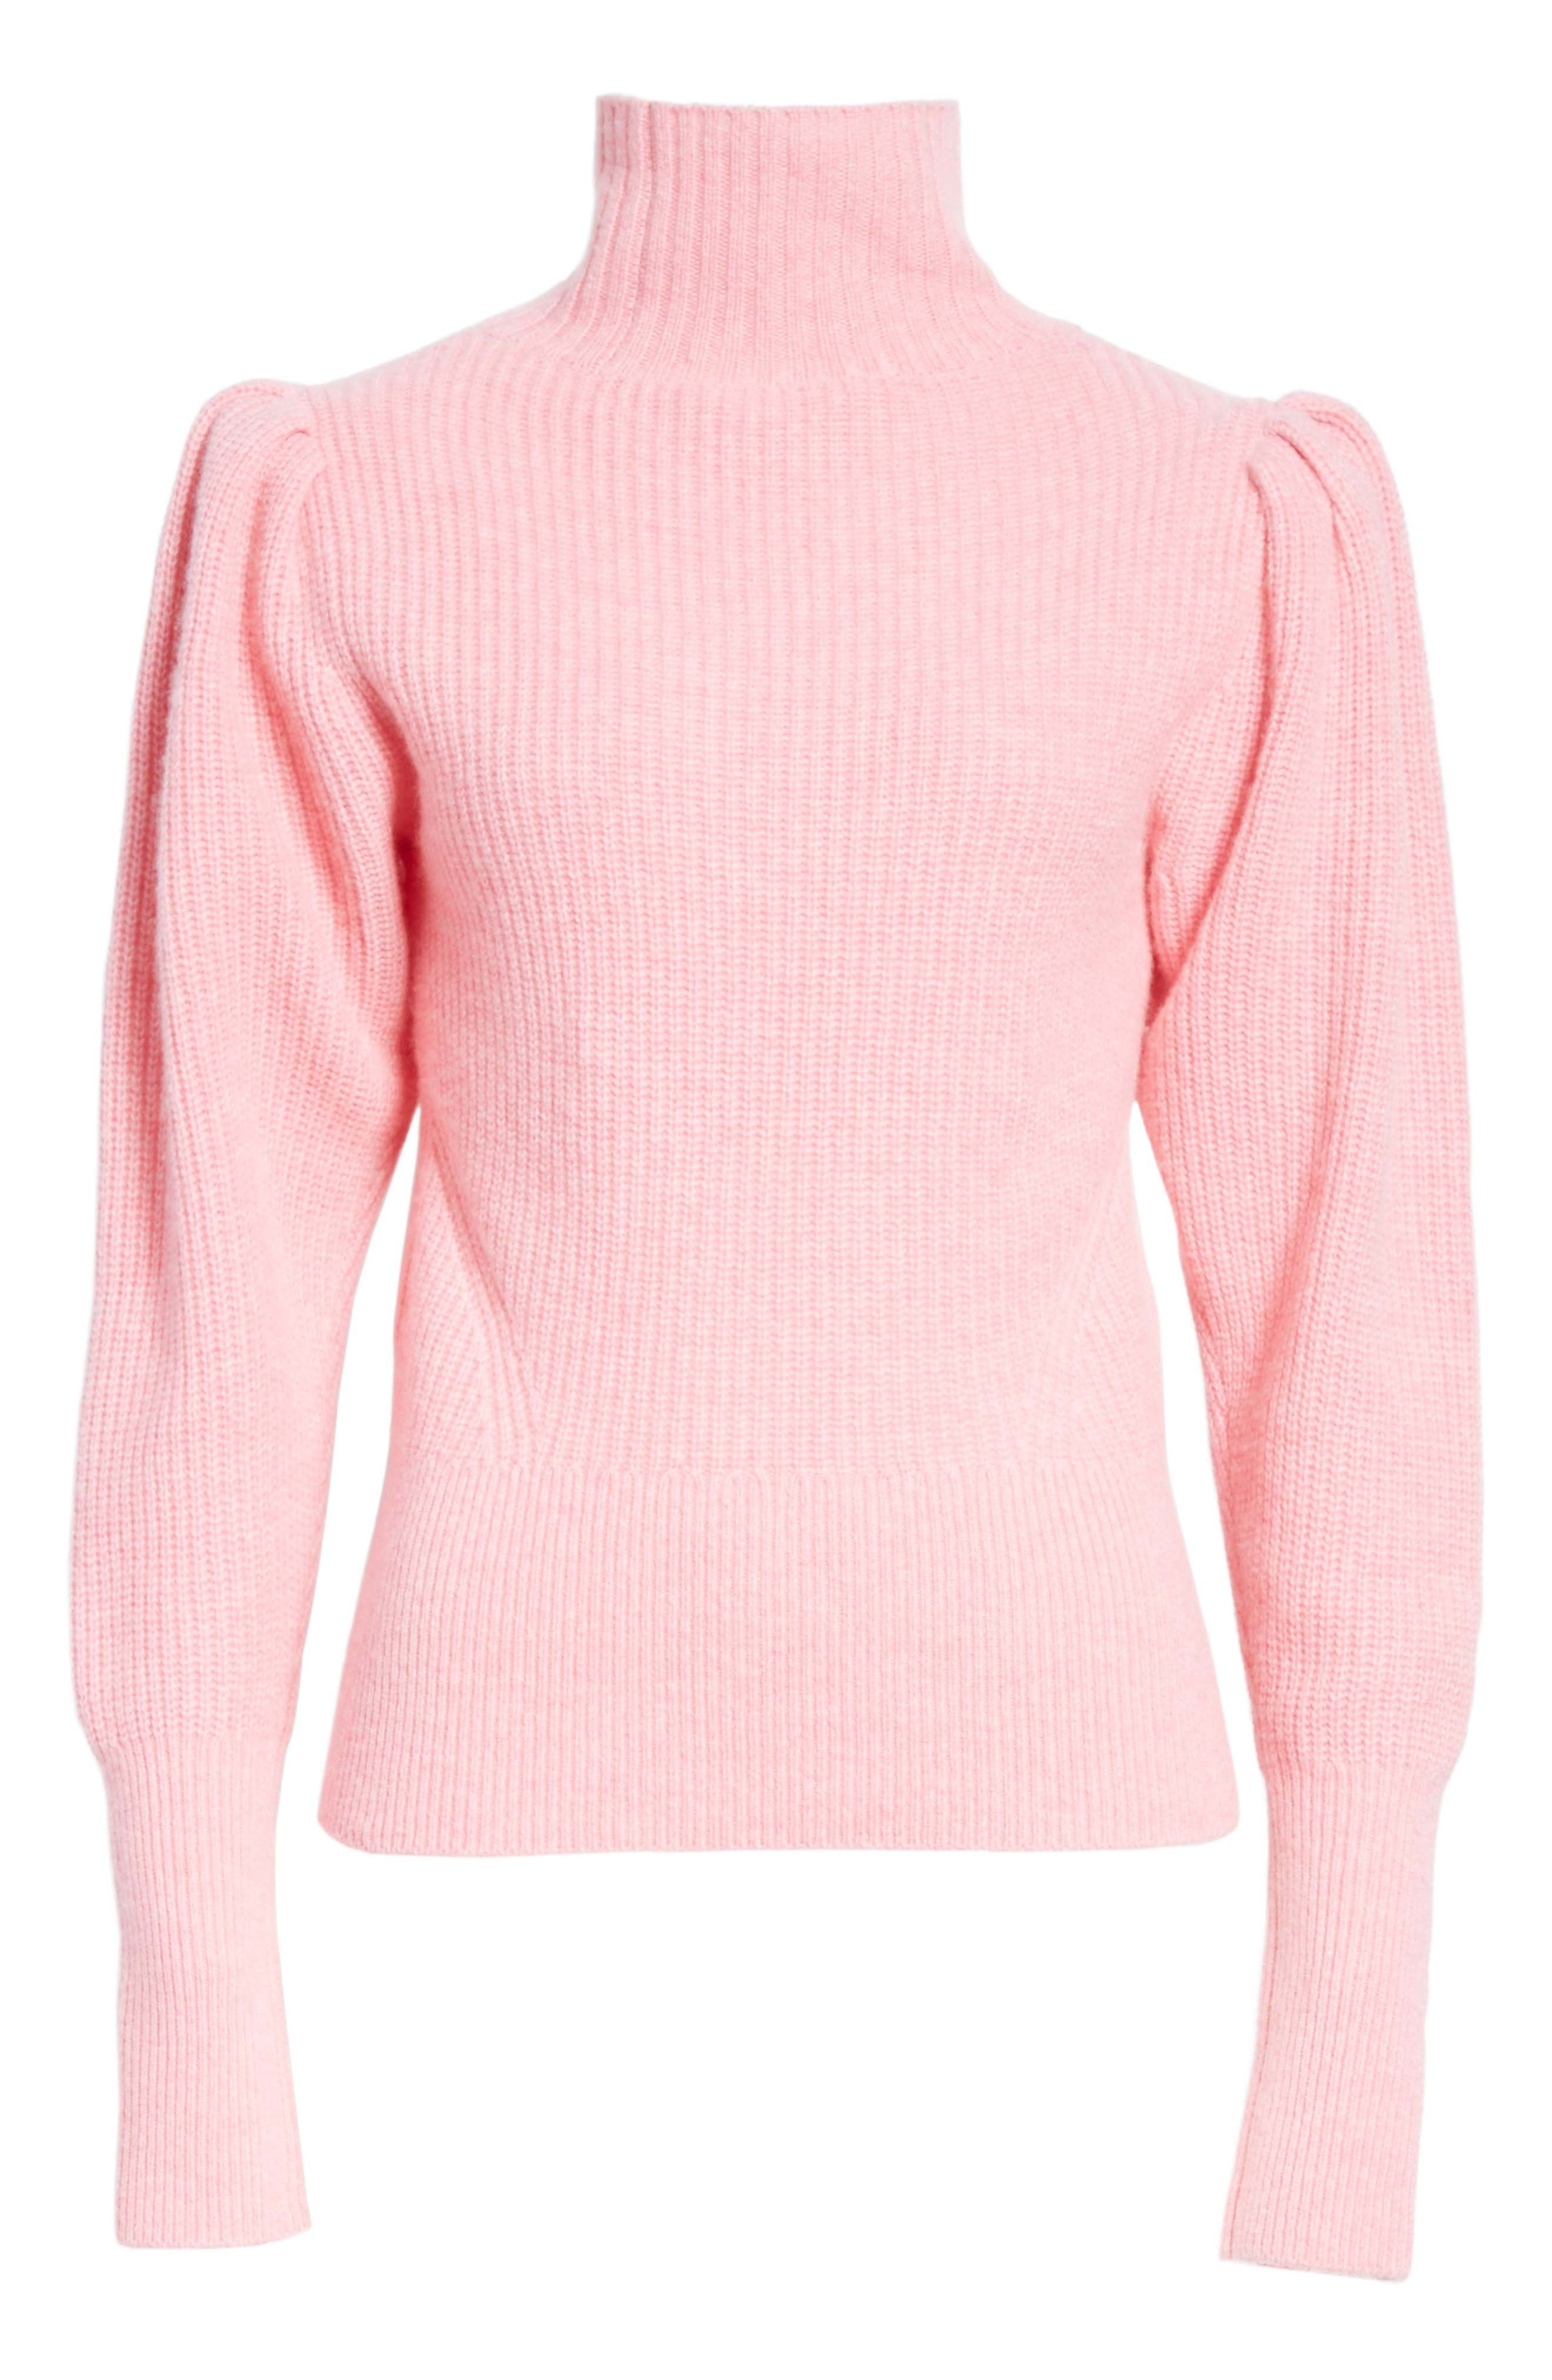 Wool & Cashmere Puff Sleeve Turtleneck Sweater,                             Alternate thumbnail 12, color,